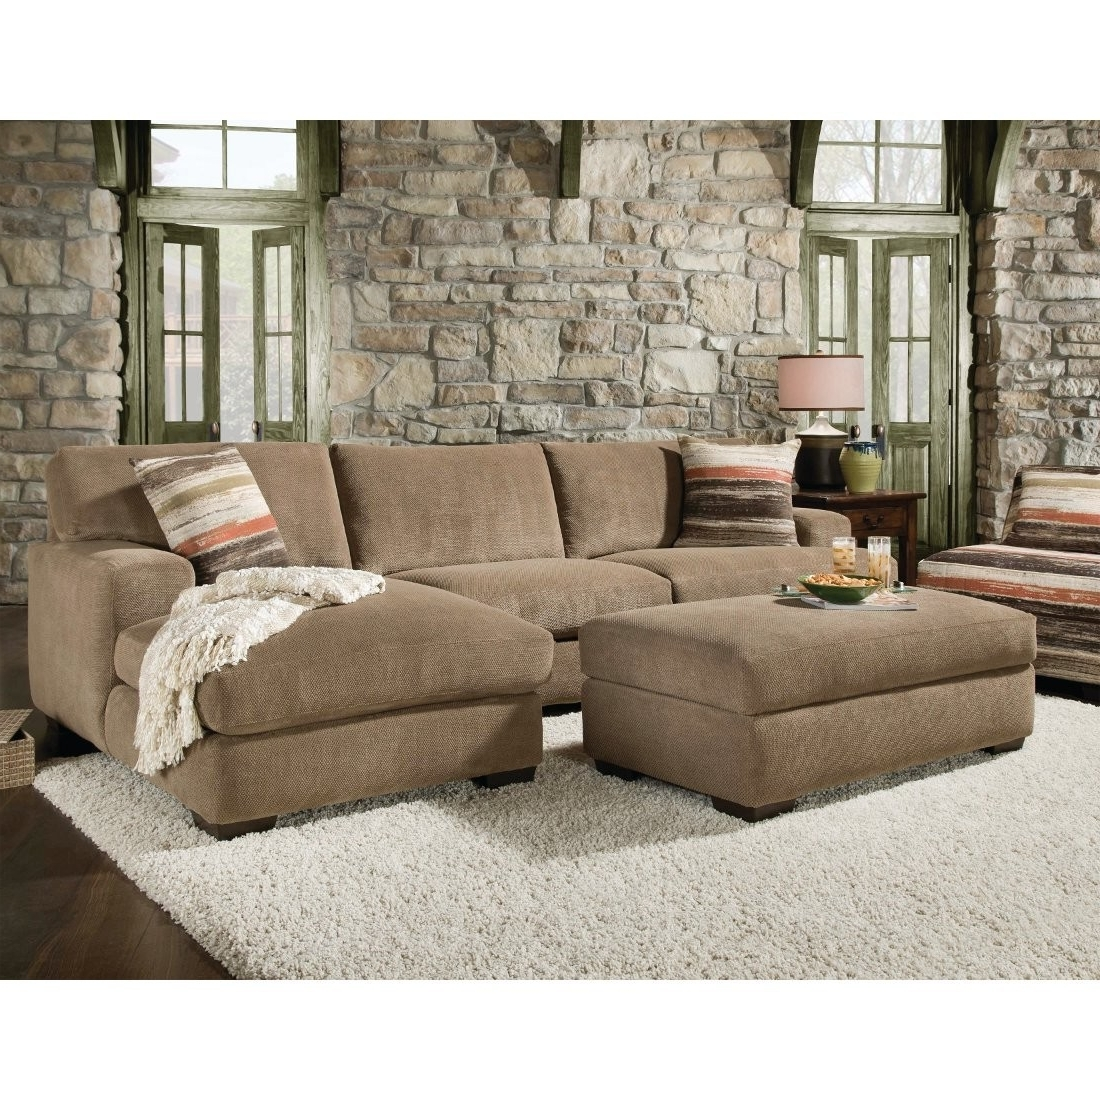 Popular Sofa : Extra Large Sectionals With Chaise Deep Sofas Deep Couches For Long Sectional Sofas With Chaise (View 9 of 15)